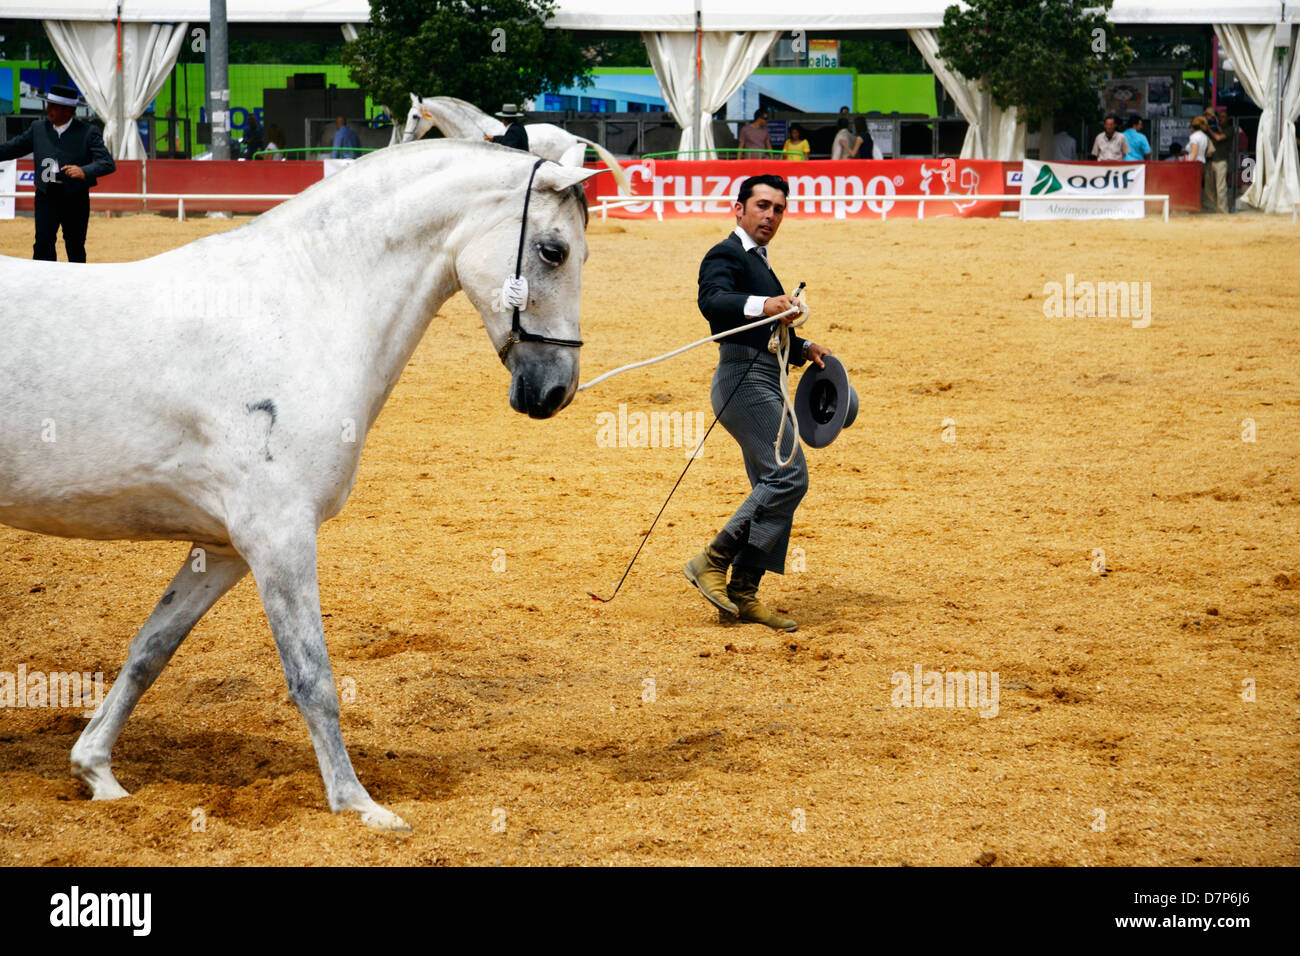 Andalusian horseman exhibiting his thoroughbred mare at Cordoba Horse Fair. Spain - Stock Image